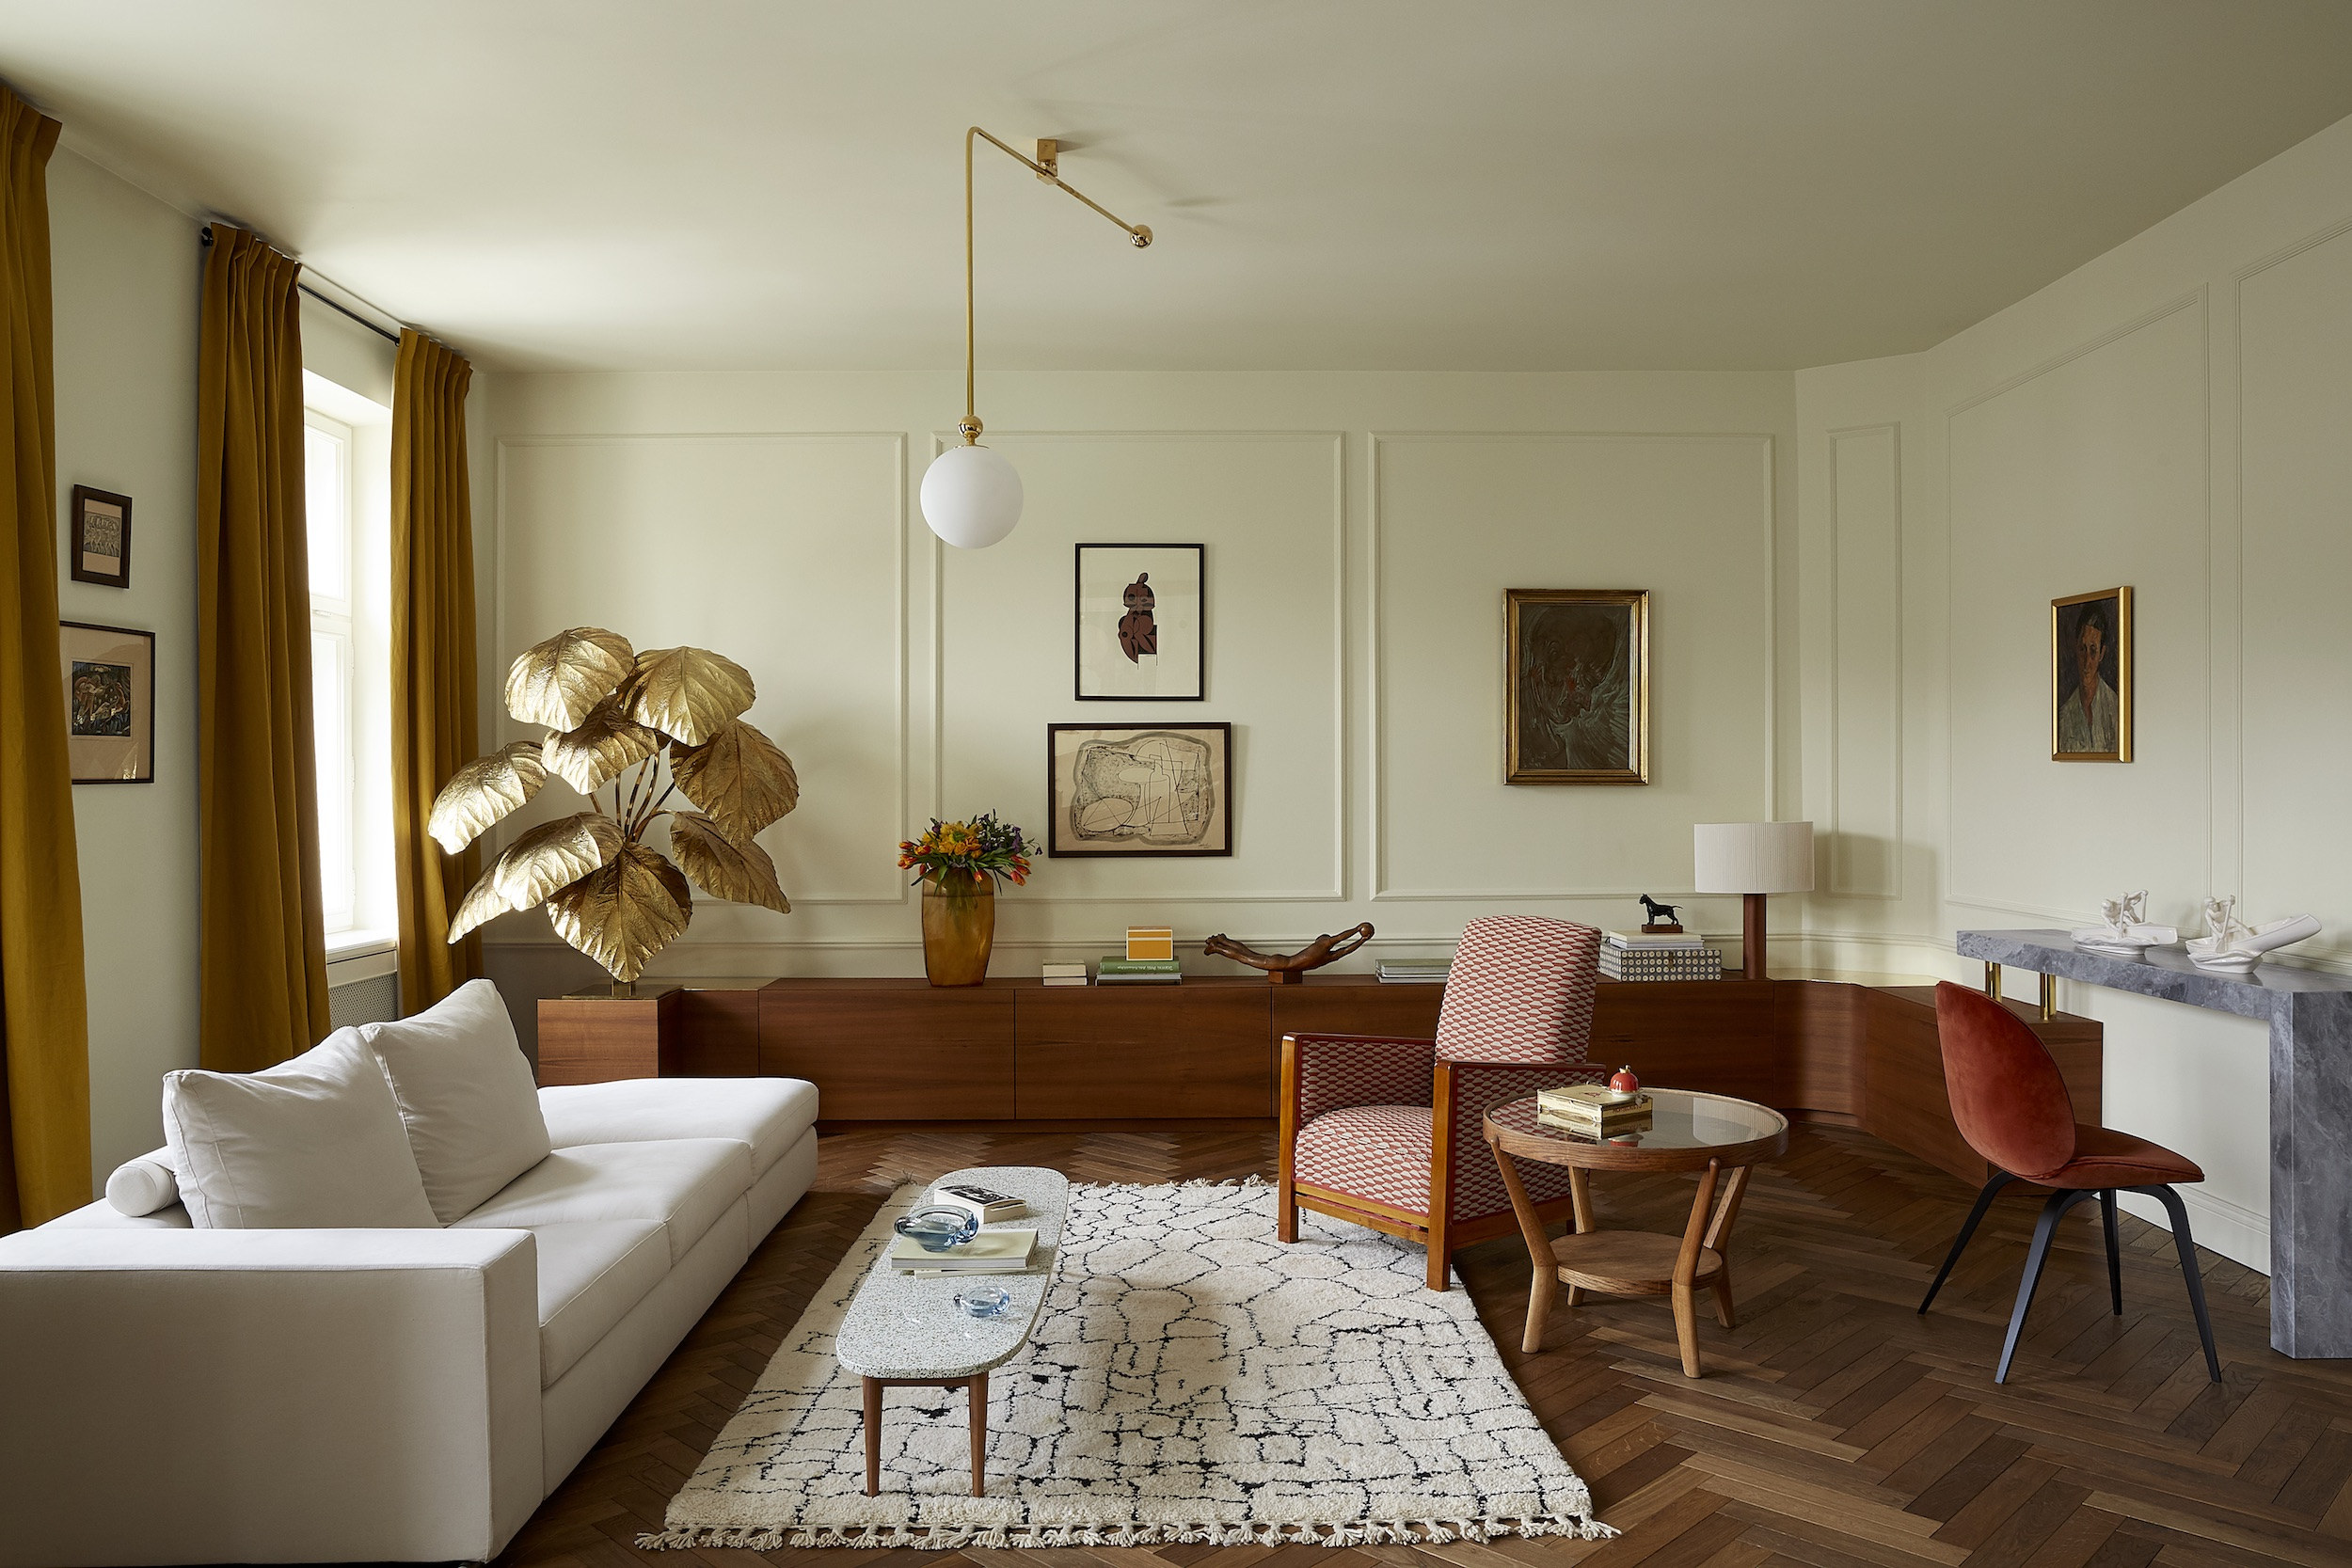 A Novelist's Elegant Pied-a-Terre in Warsaw